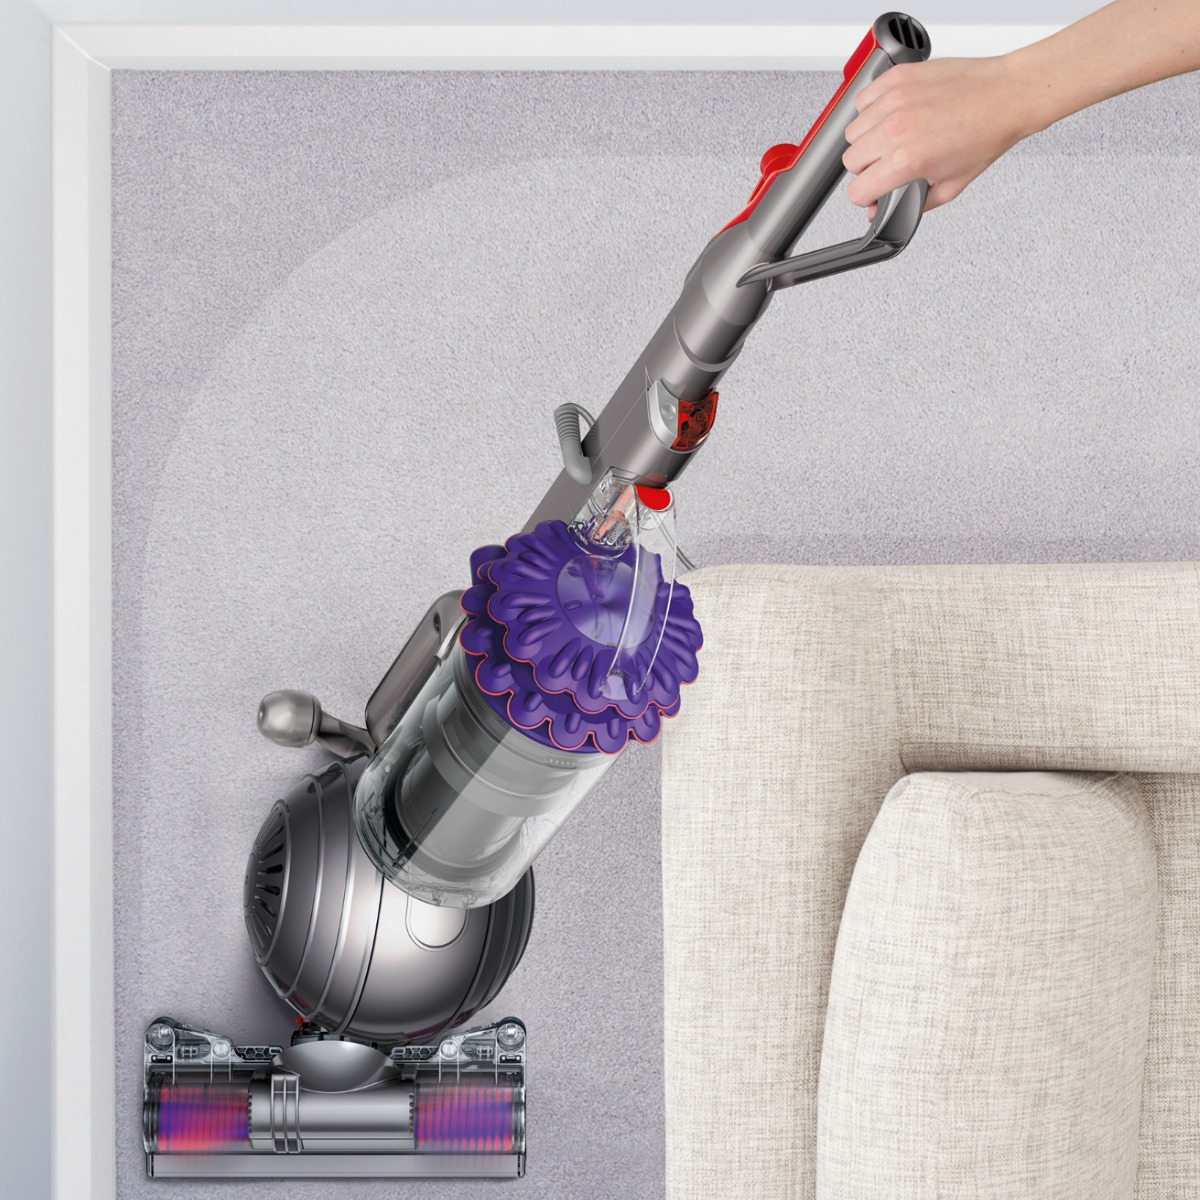 Dyson Pet Vacuum in use near couch